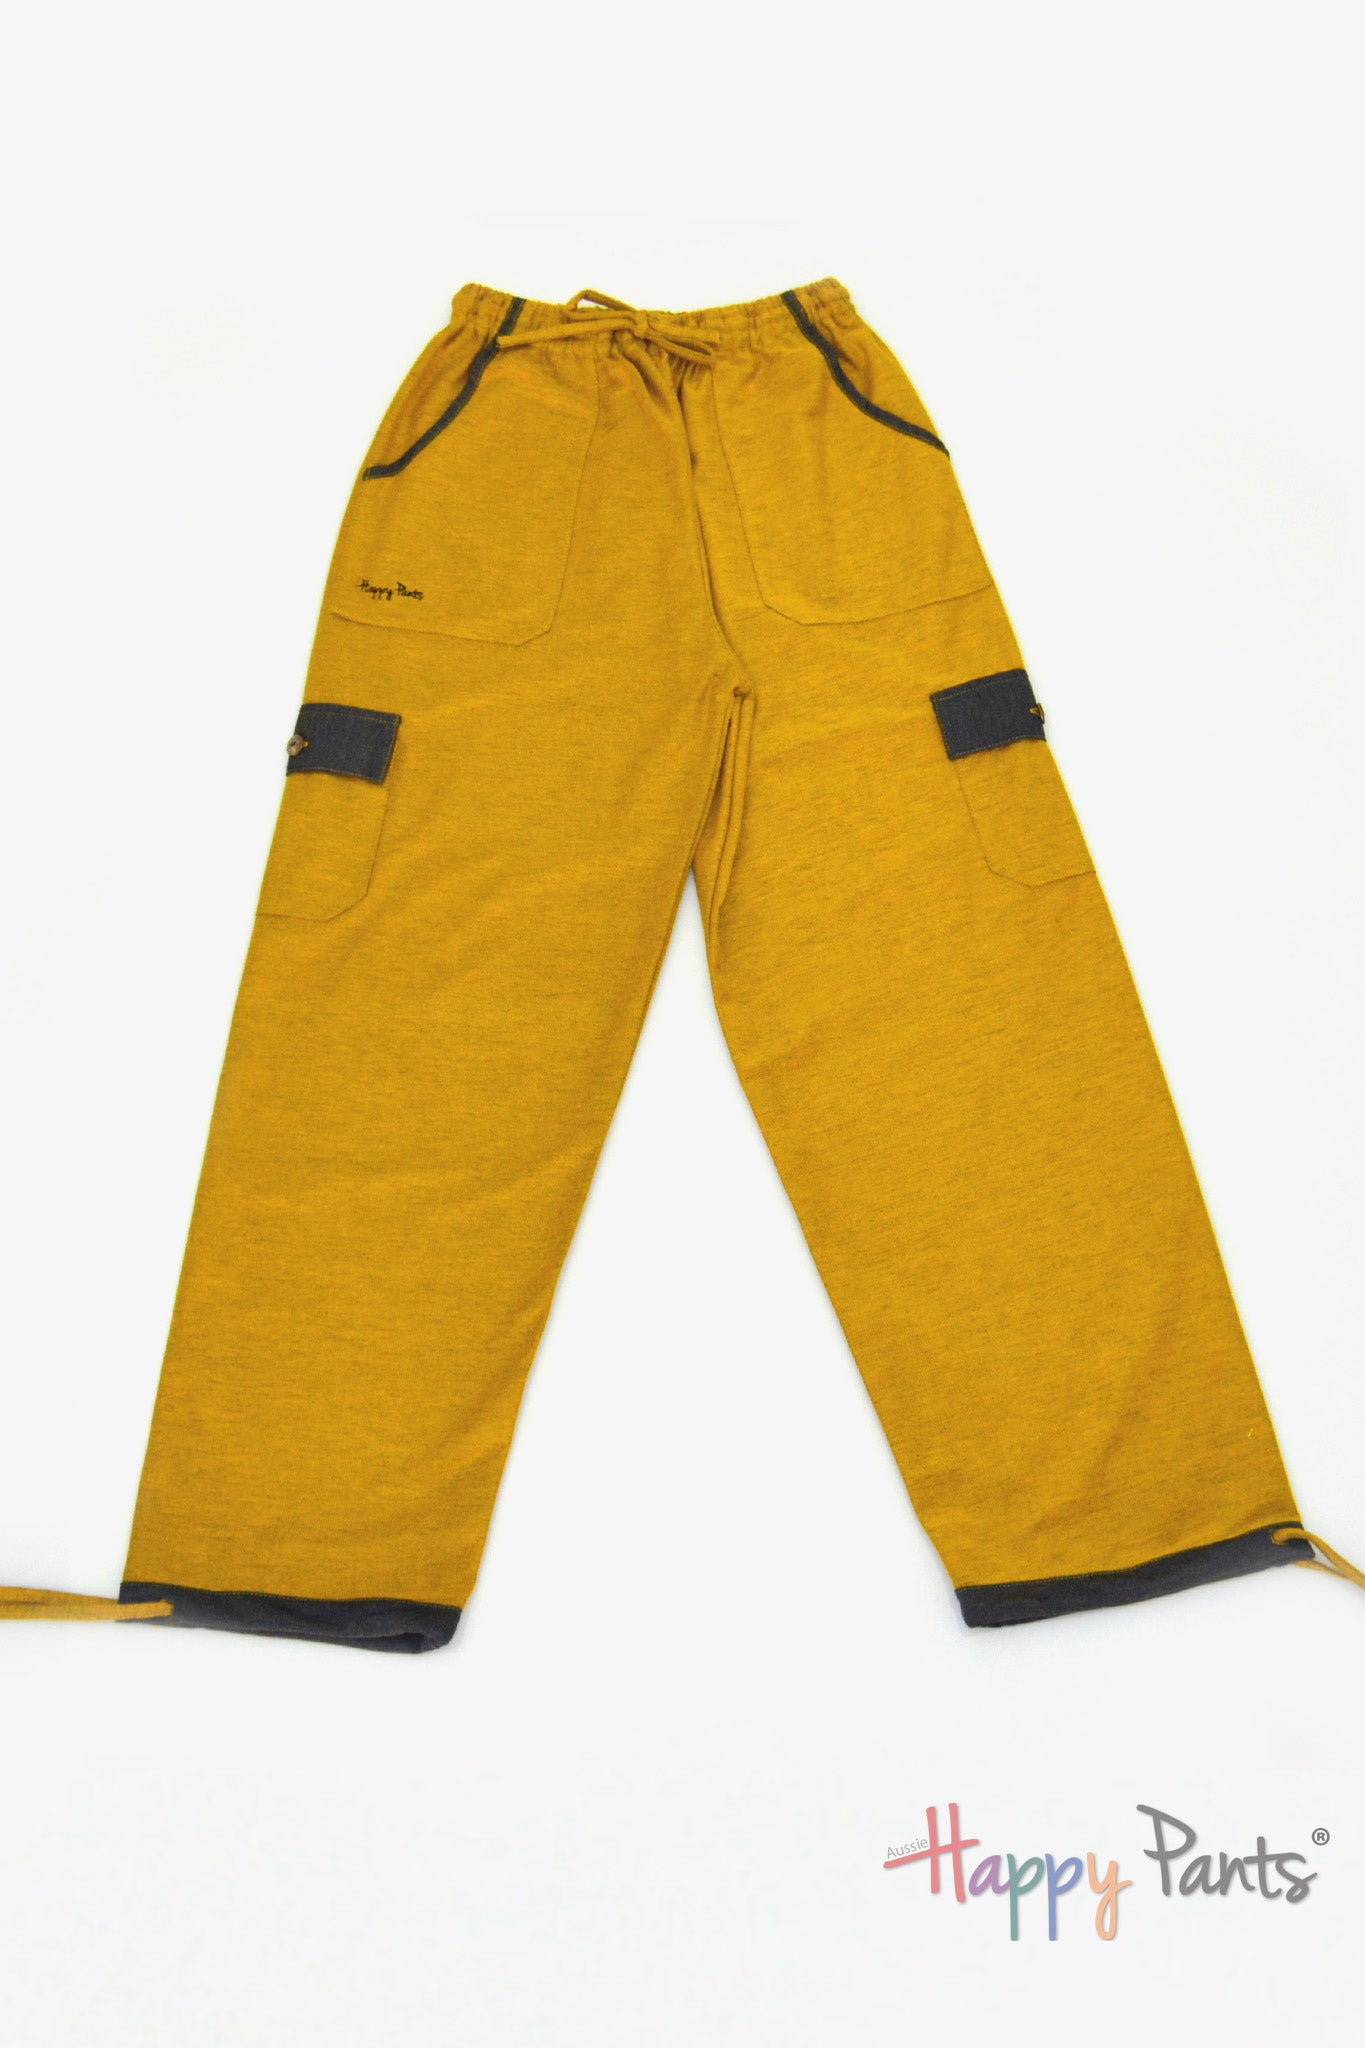 Golden Dragon Pants